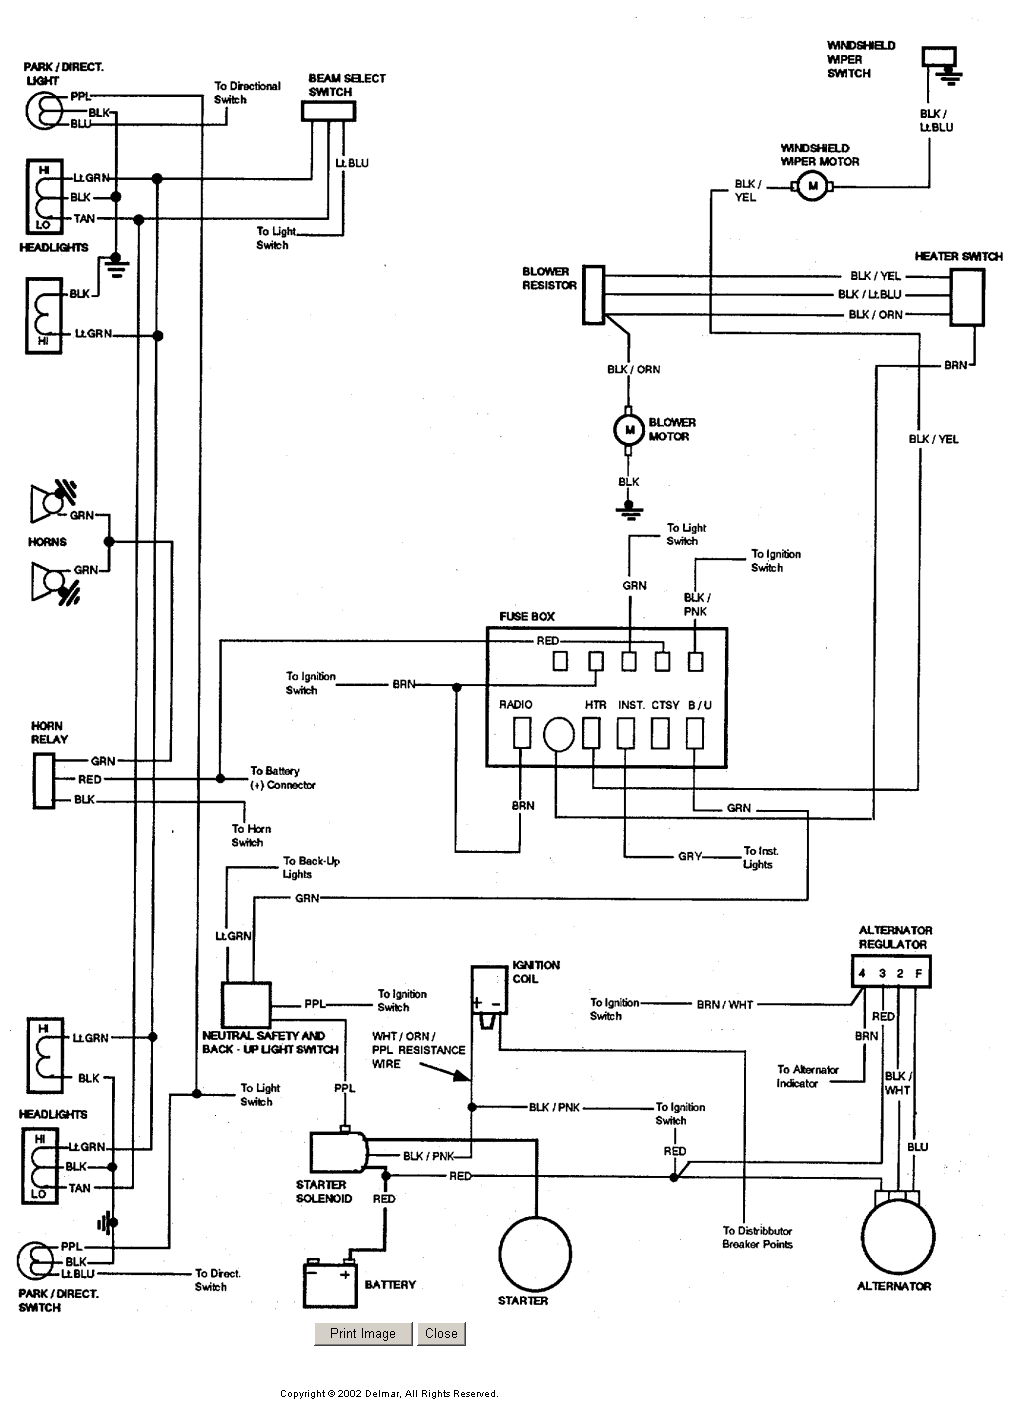 71 C10 Wiring Diagram Two Battery Wiring Diagram Delco Electronics Yenpancane Jeanjaures37 Fr